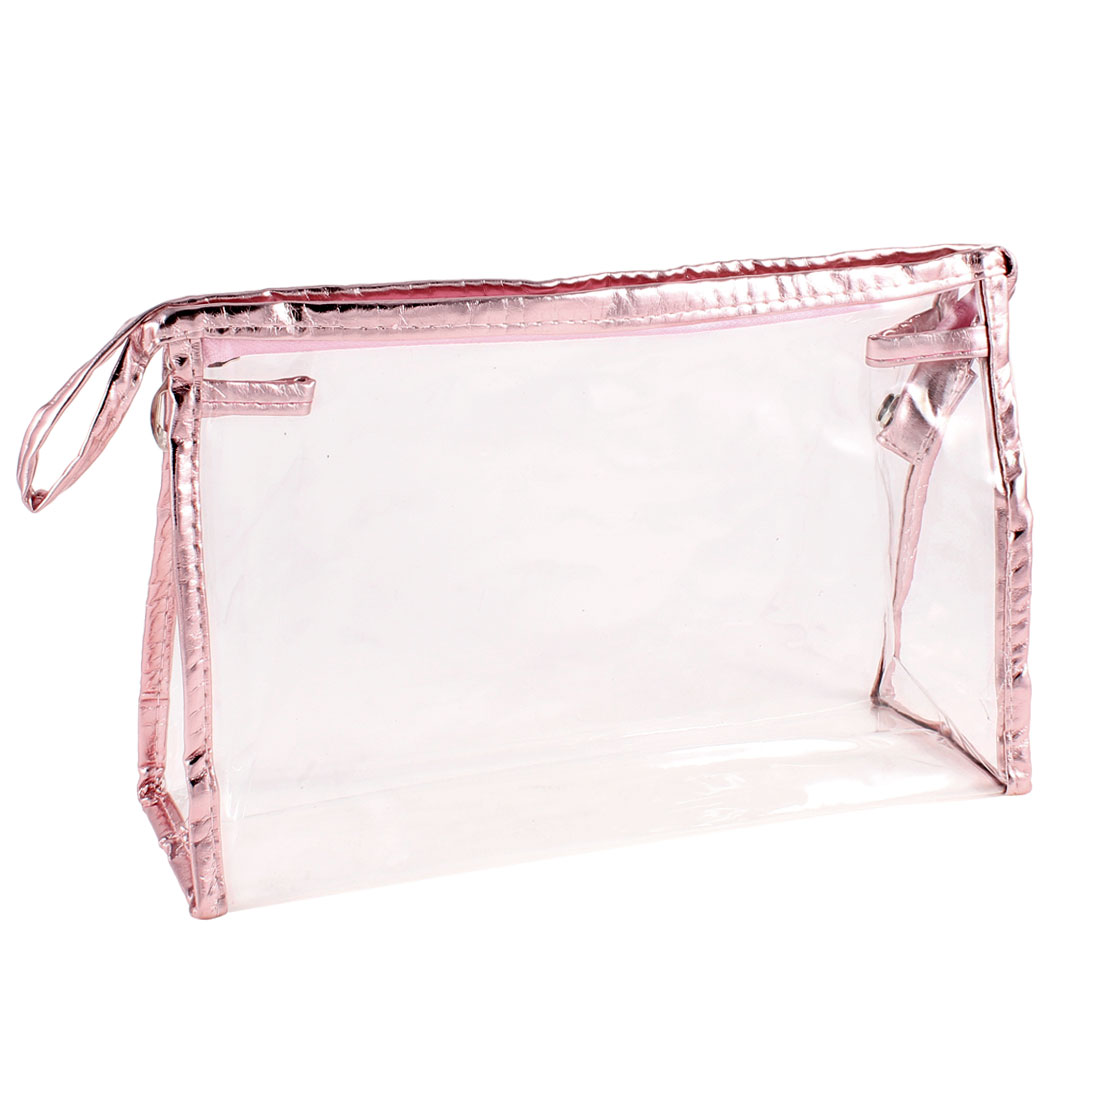 Travel Rectangular Pink Faux Leather Frame Transparent Makeup Holder Bag 27cmx8cmx16cm